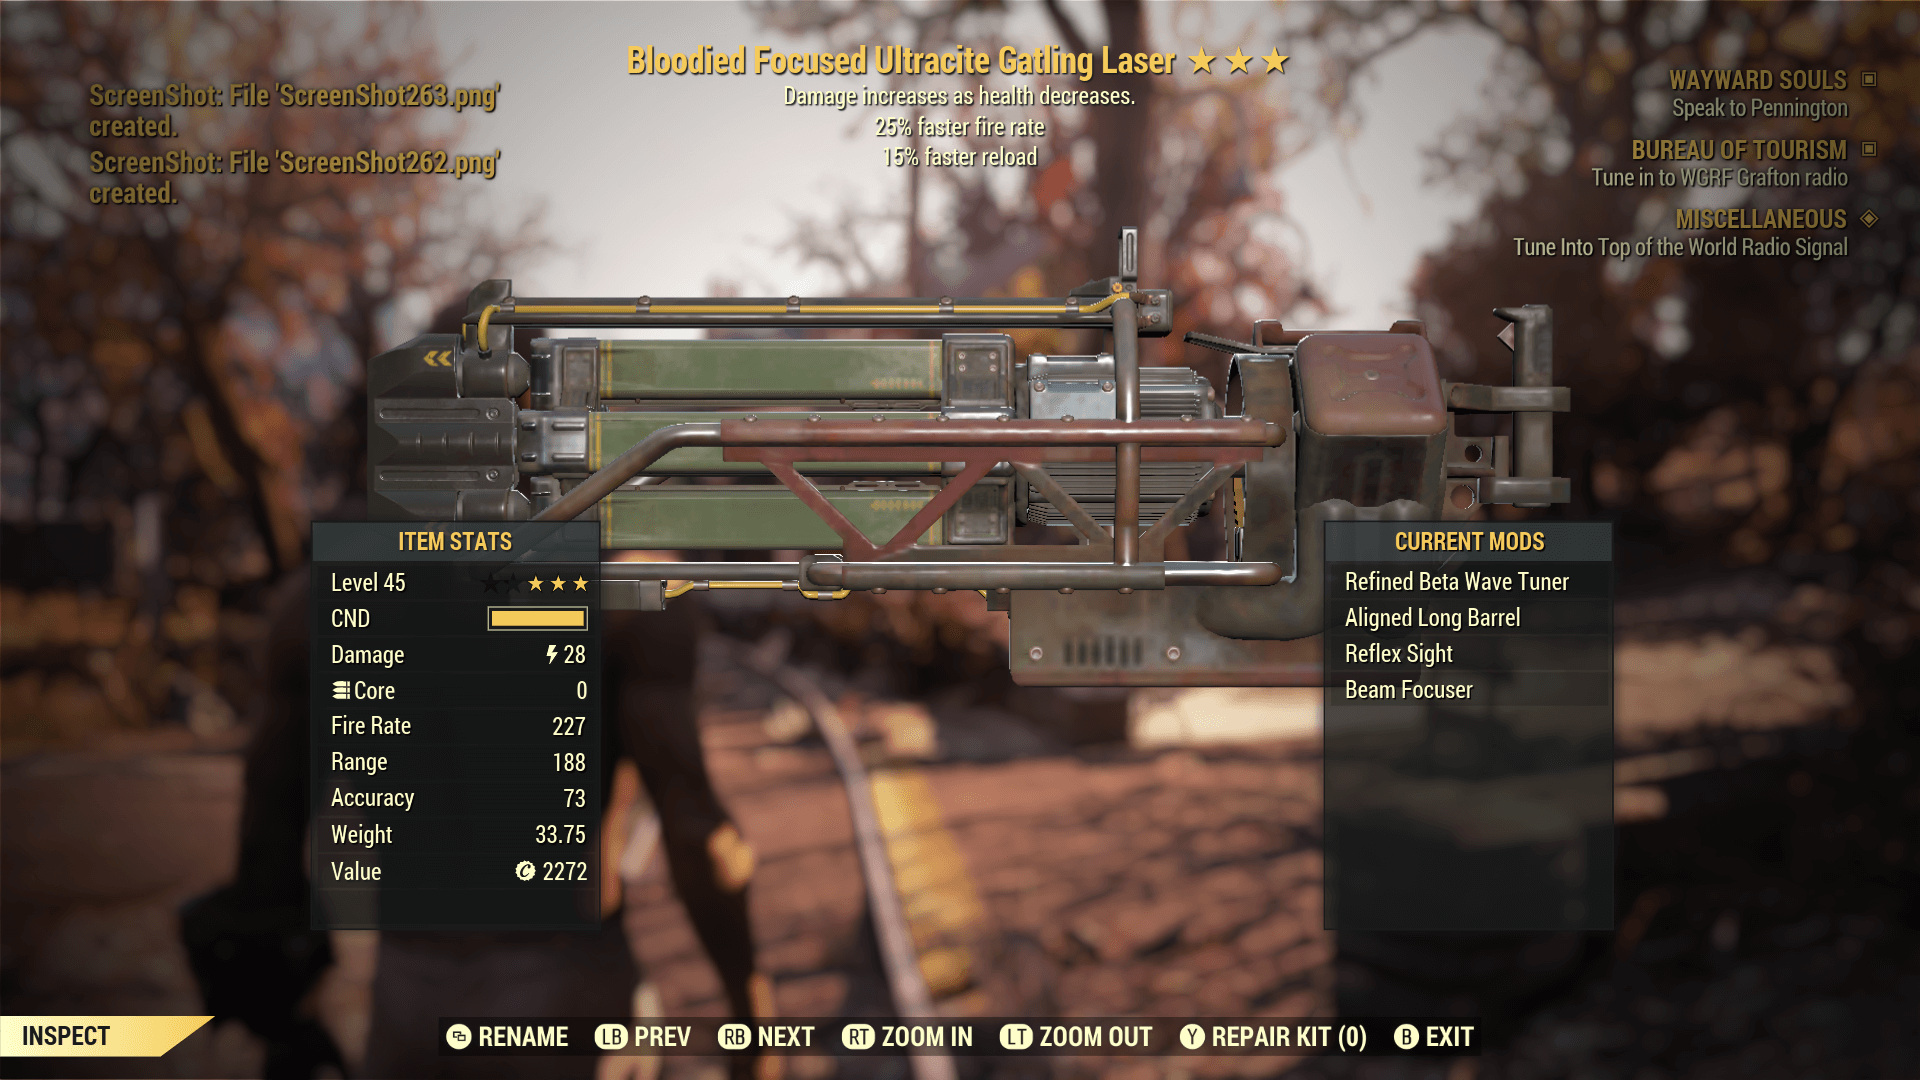 Bloodied Focused Ultracite Gatling Laser[25% faster fire rate][15% faster reload]